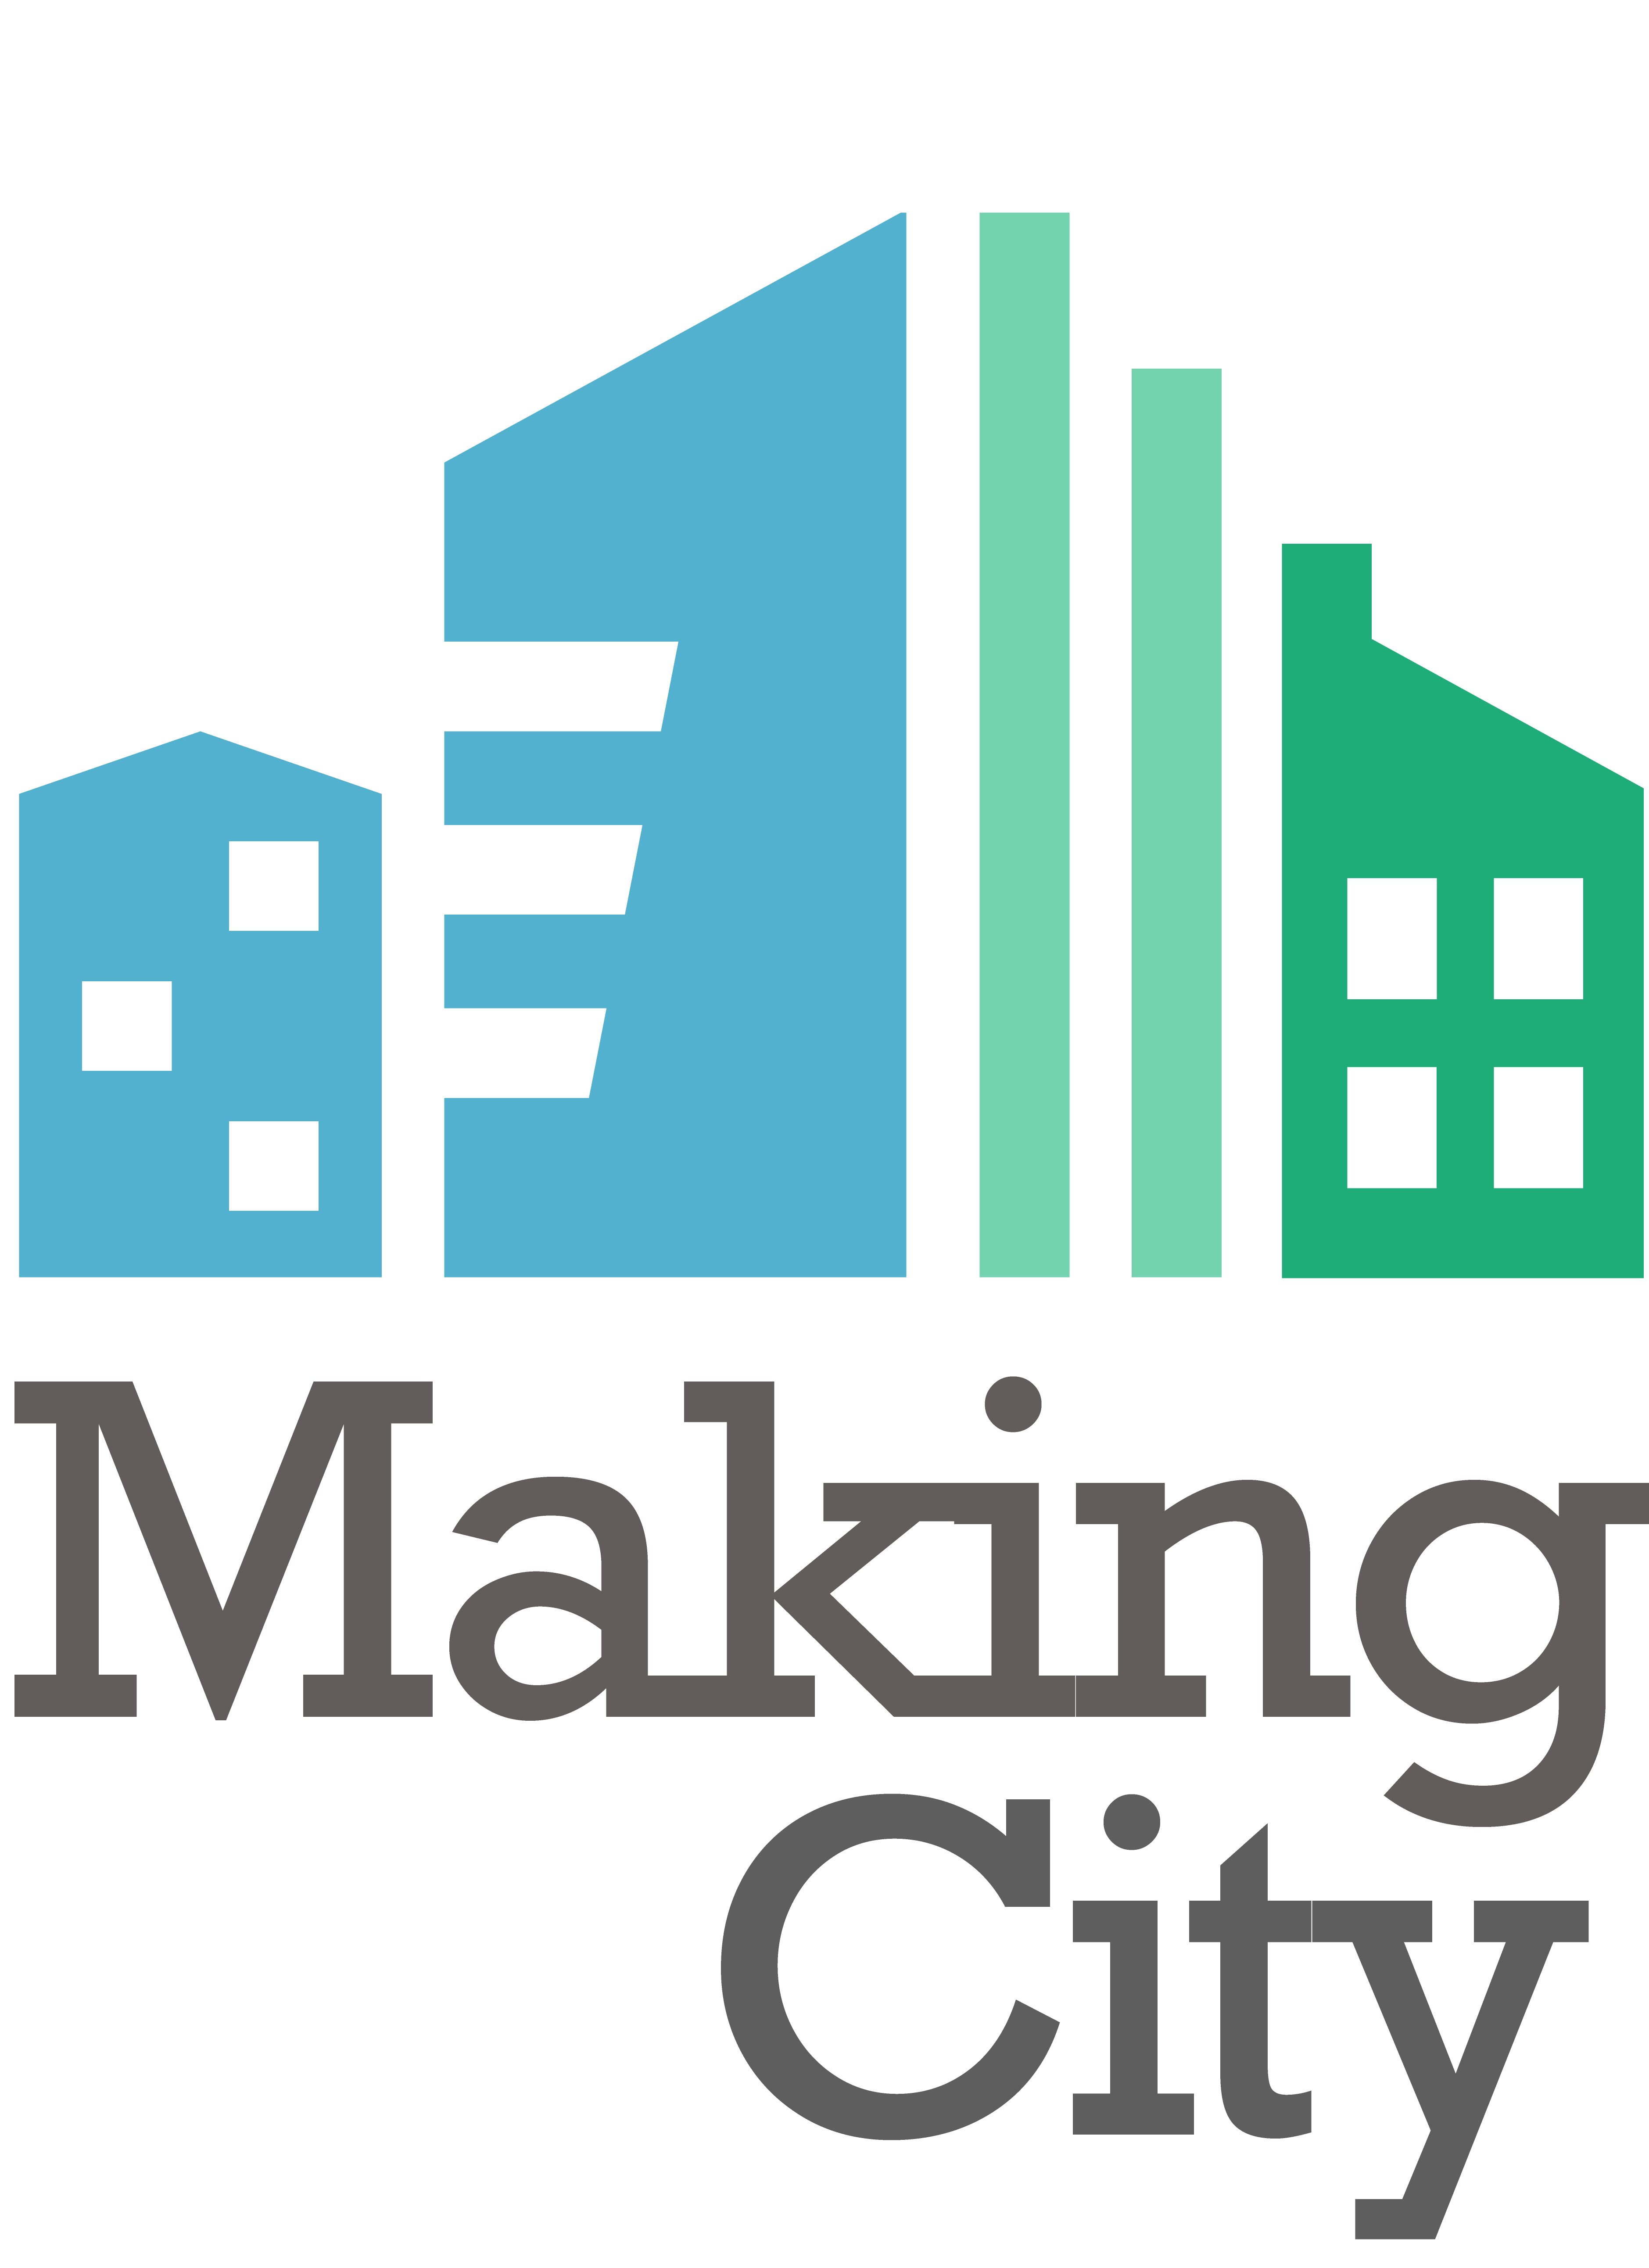 Making city hankkeen logo